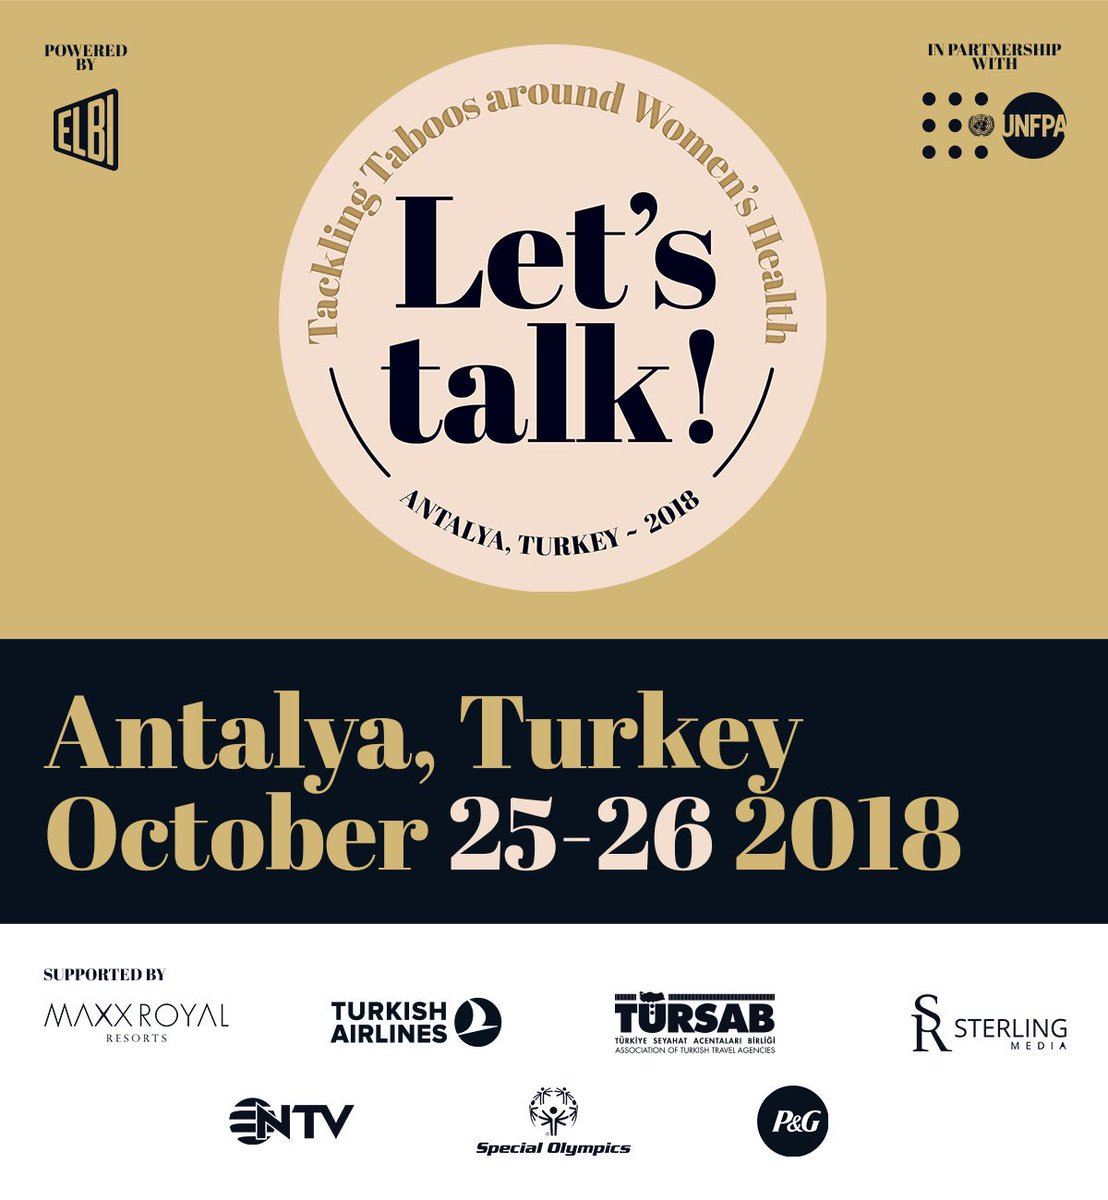 Super exciting day at Elbi HQ. We are proud to announce our #LetsTalkAboutIt event in partnership with @UNFPA discussing  all things taboo & stigma around women's health. It will take place @MaxxRoyal in #Antalya this October. Hosted by our very own @NataSupernova https://t.co/ZZ9pC0EzEa